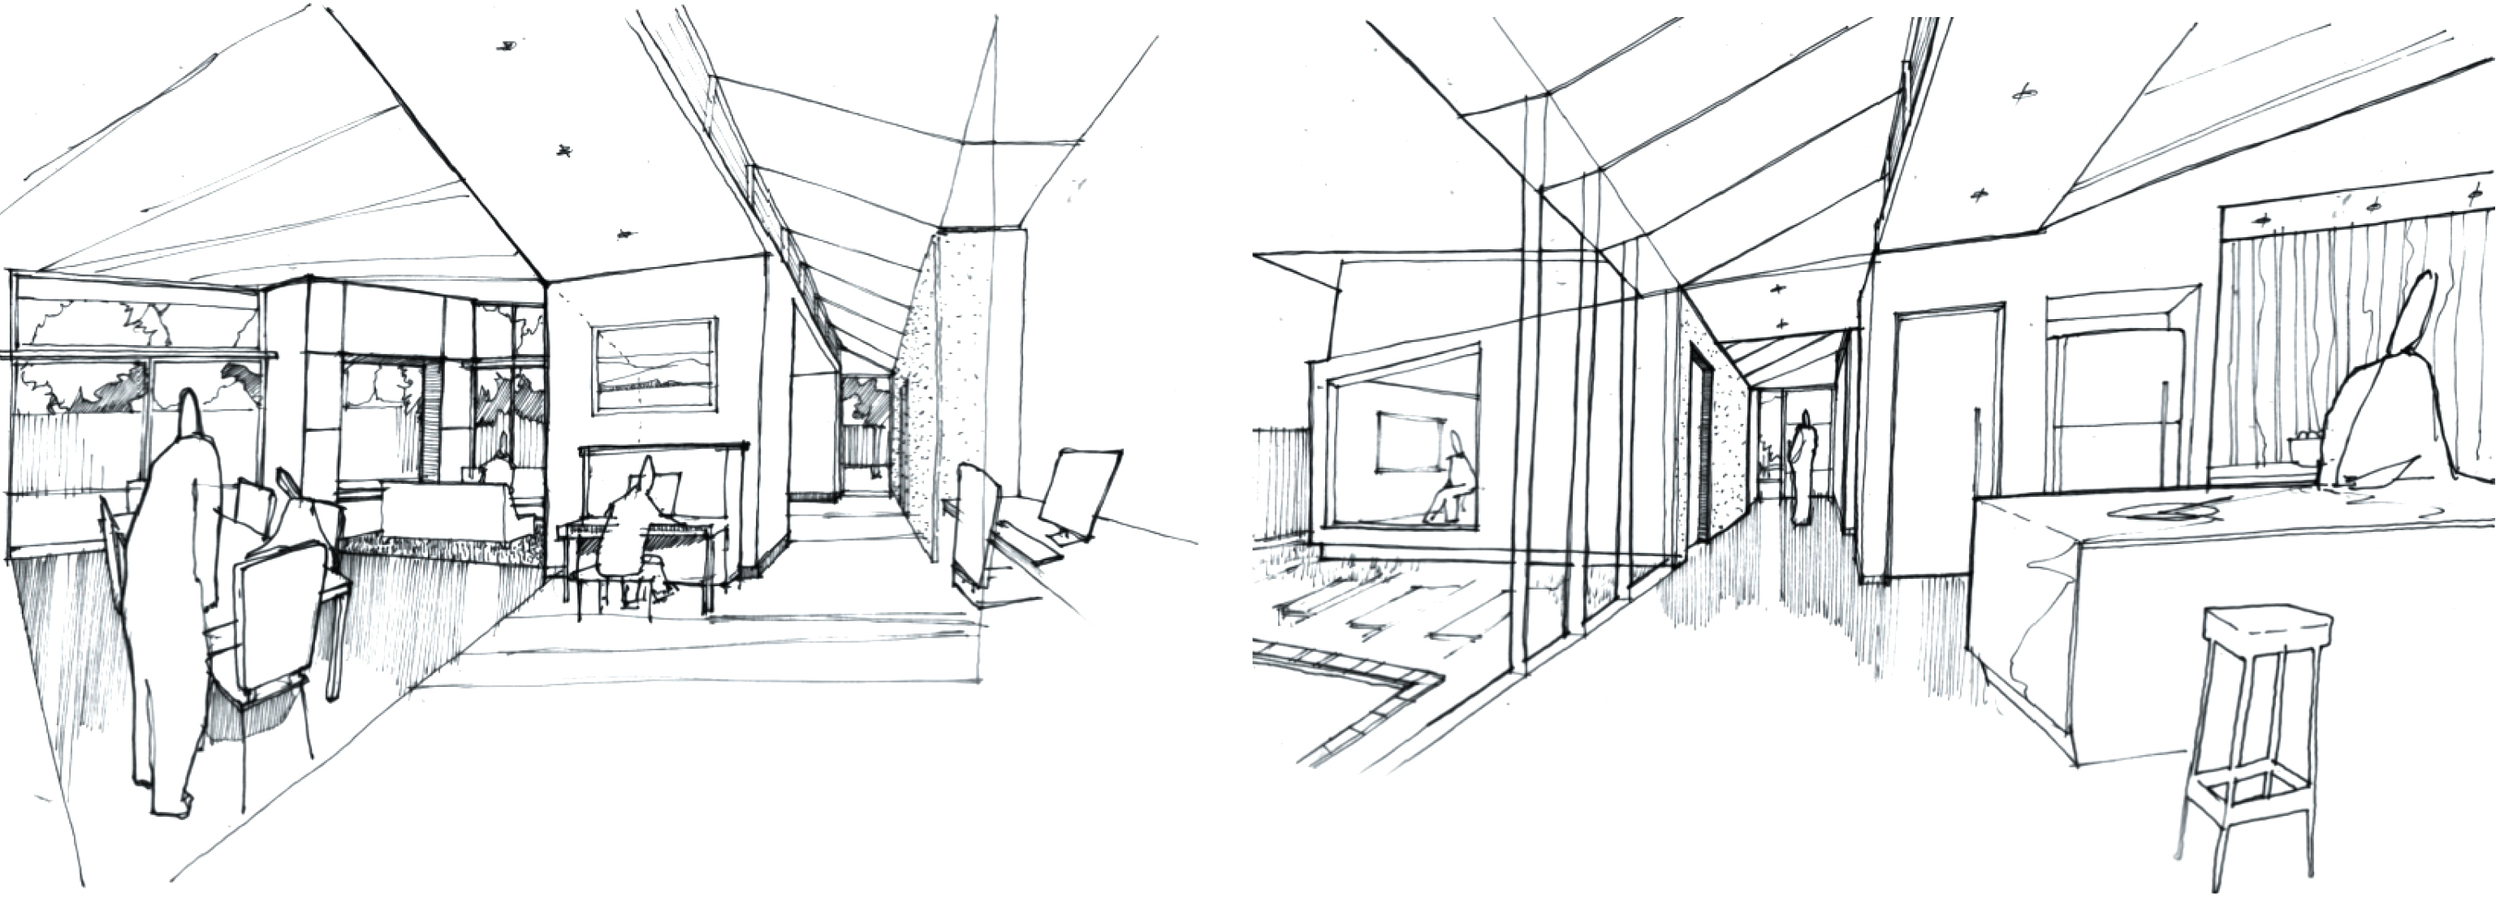 #sketch #drawing  #fanandflare  #architecture   #architect   #architecturephotography   #archilovers   #architecturelover   #architectureporn   #cement   #design   #architectureandpeople   #familyhome   #ecohome   #ecohouse   #ecofriendly   #sustainability   #sketch   #architecturelife   #archigram   #home   #architecturemodel   # suburb #cement #rammedearth #familyhome